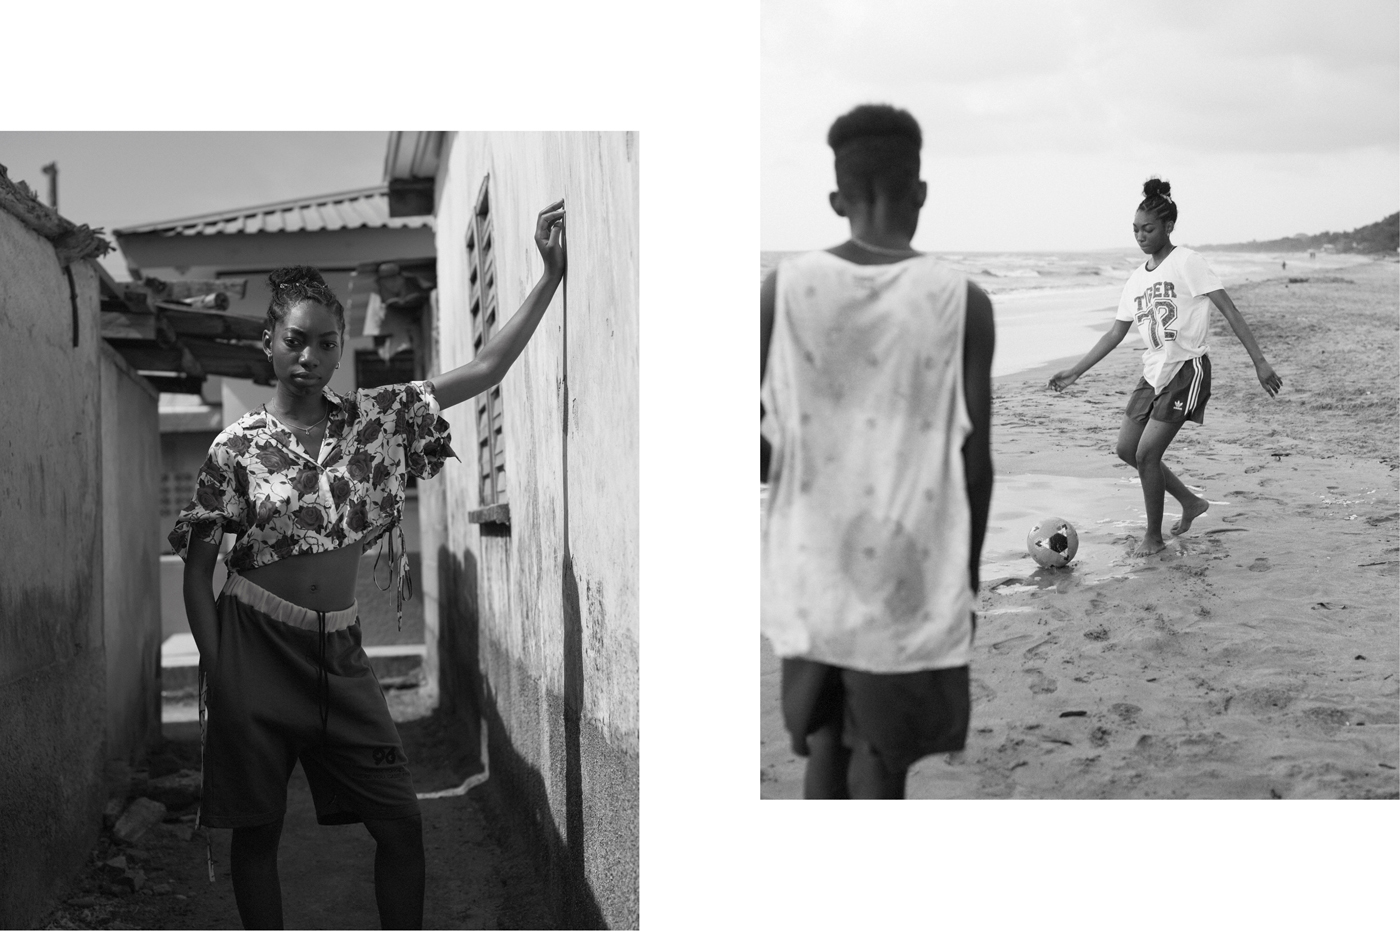 Left: Top by Alexander Wang. Shorts by Project 96.Right: Top by Roberto Cavalli. Shorts by Adidas.